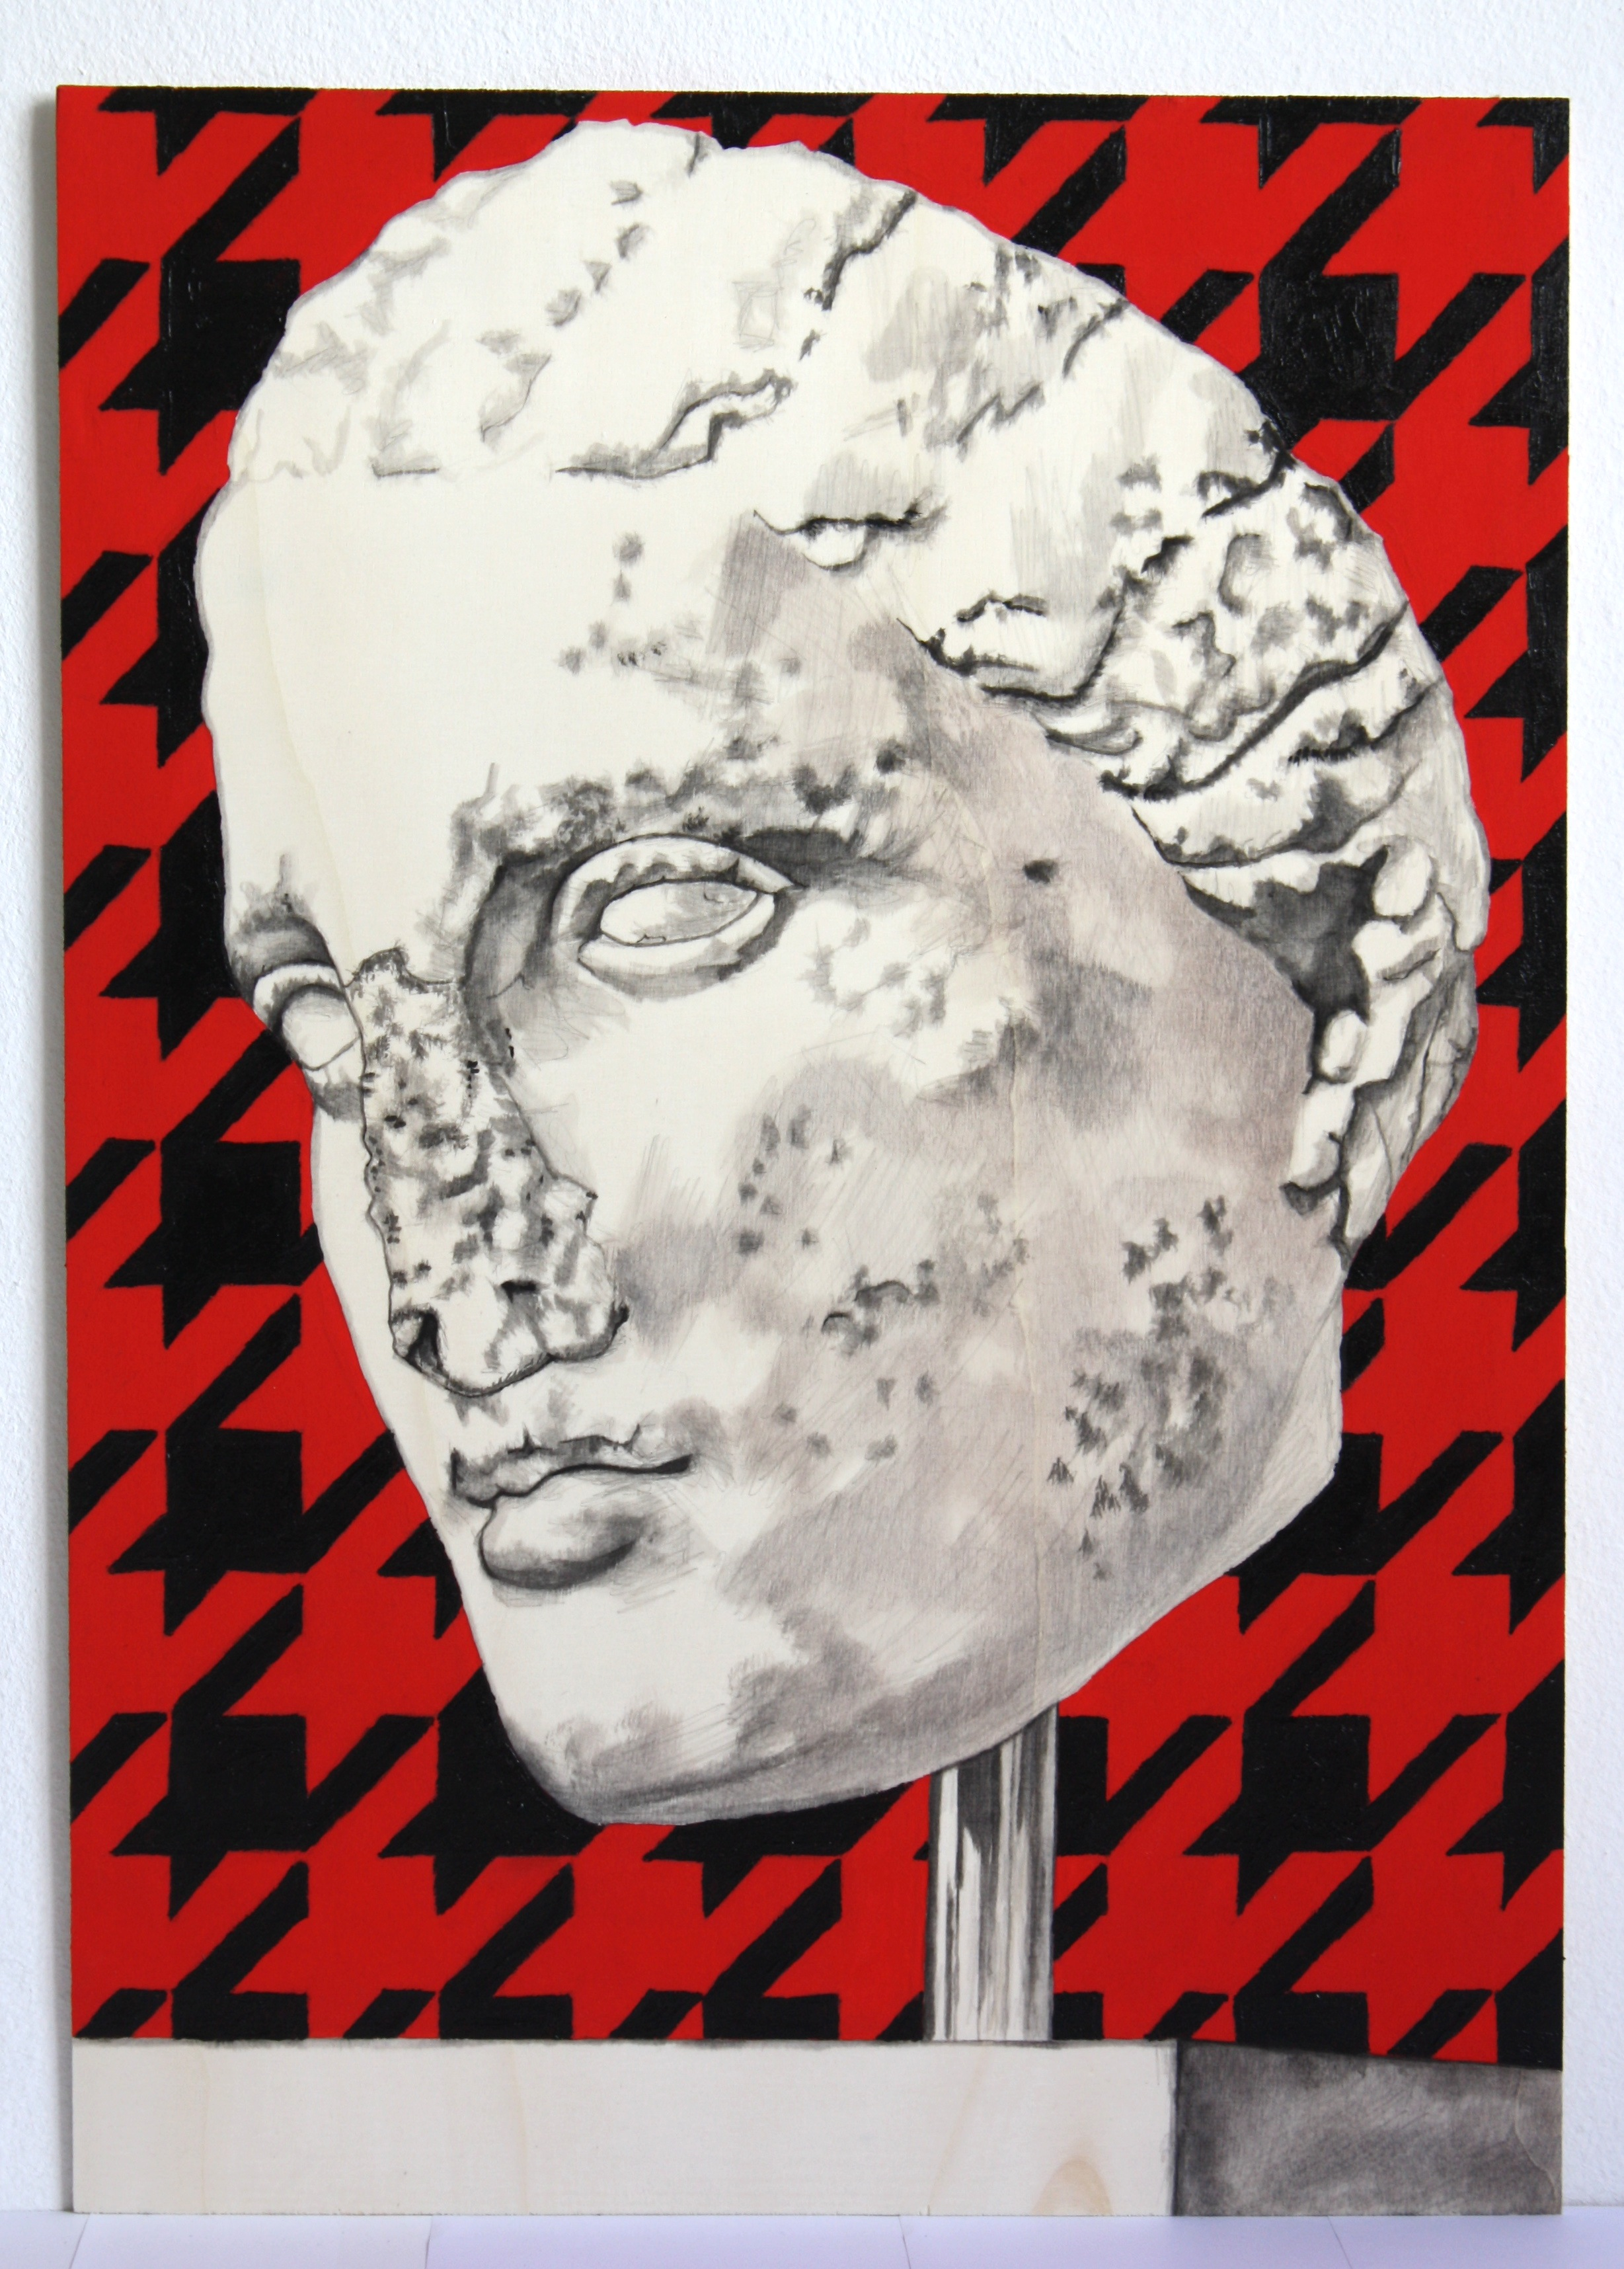 Black on Red McQueen'd Woman's Head